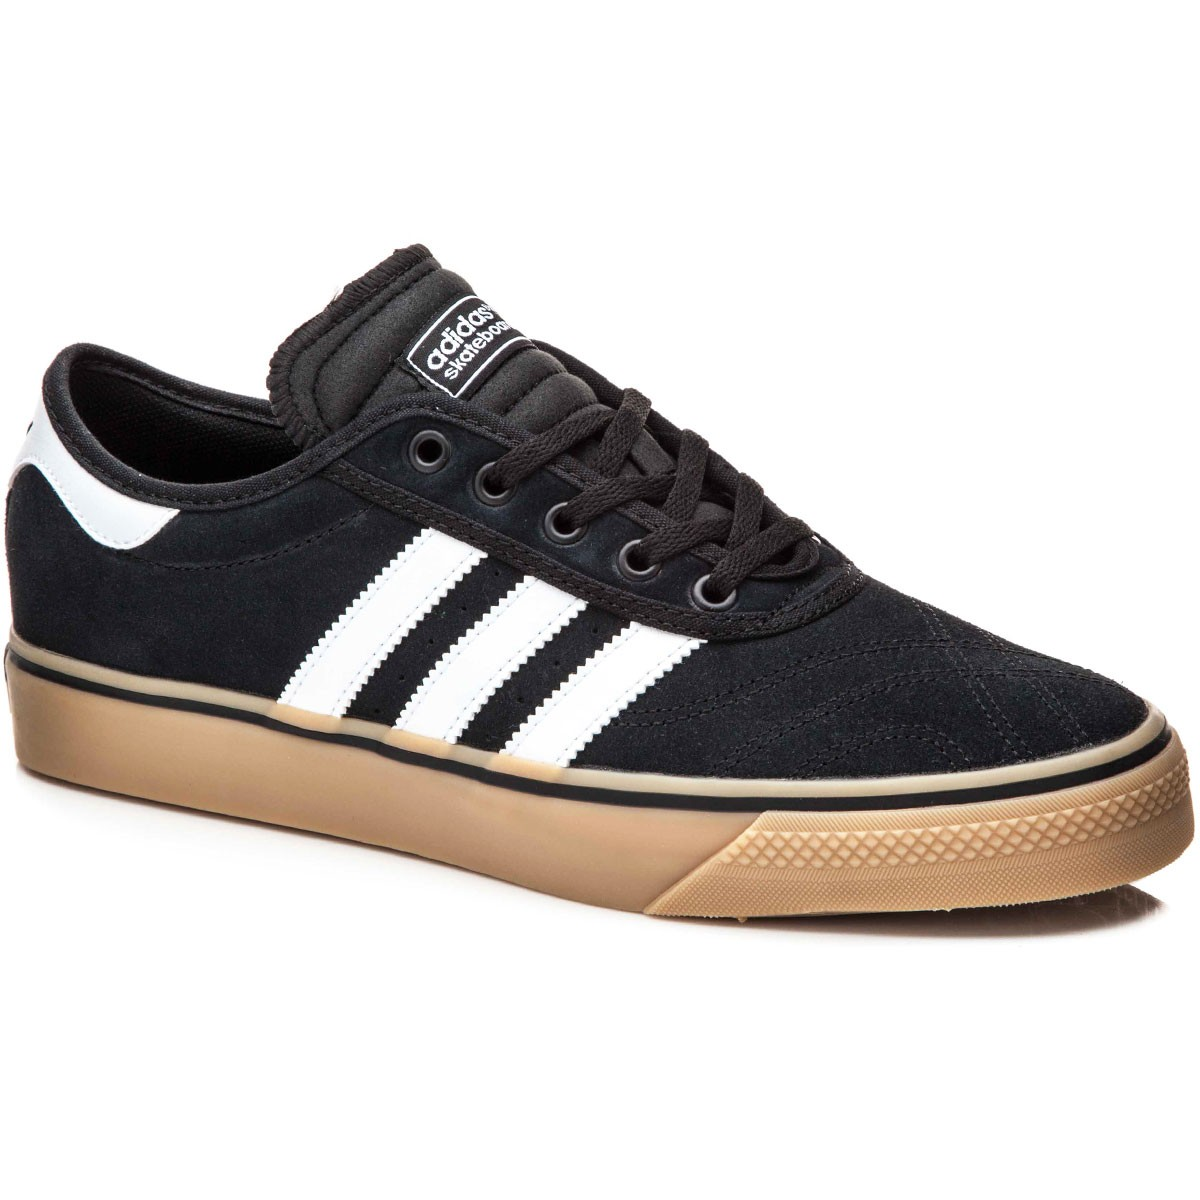 uk availability a18e6 2acfd Adidas Adi-Ease Premiere Shoes